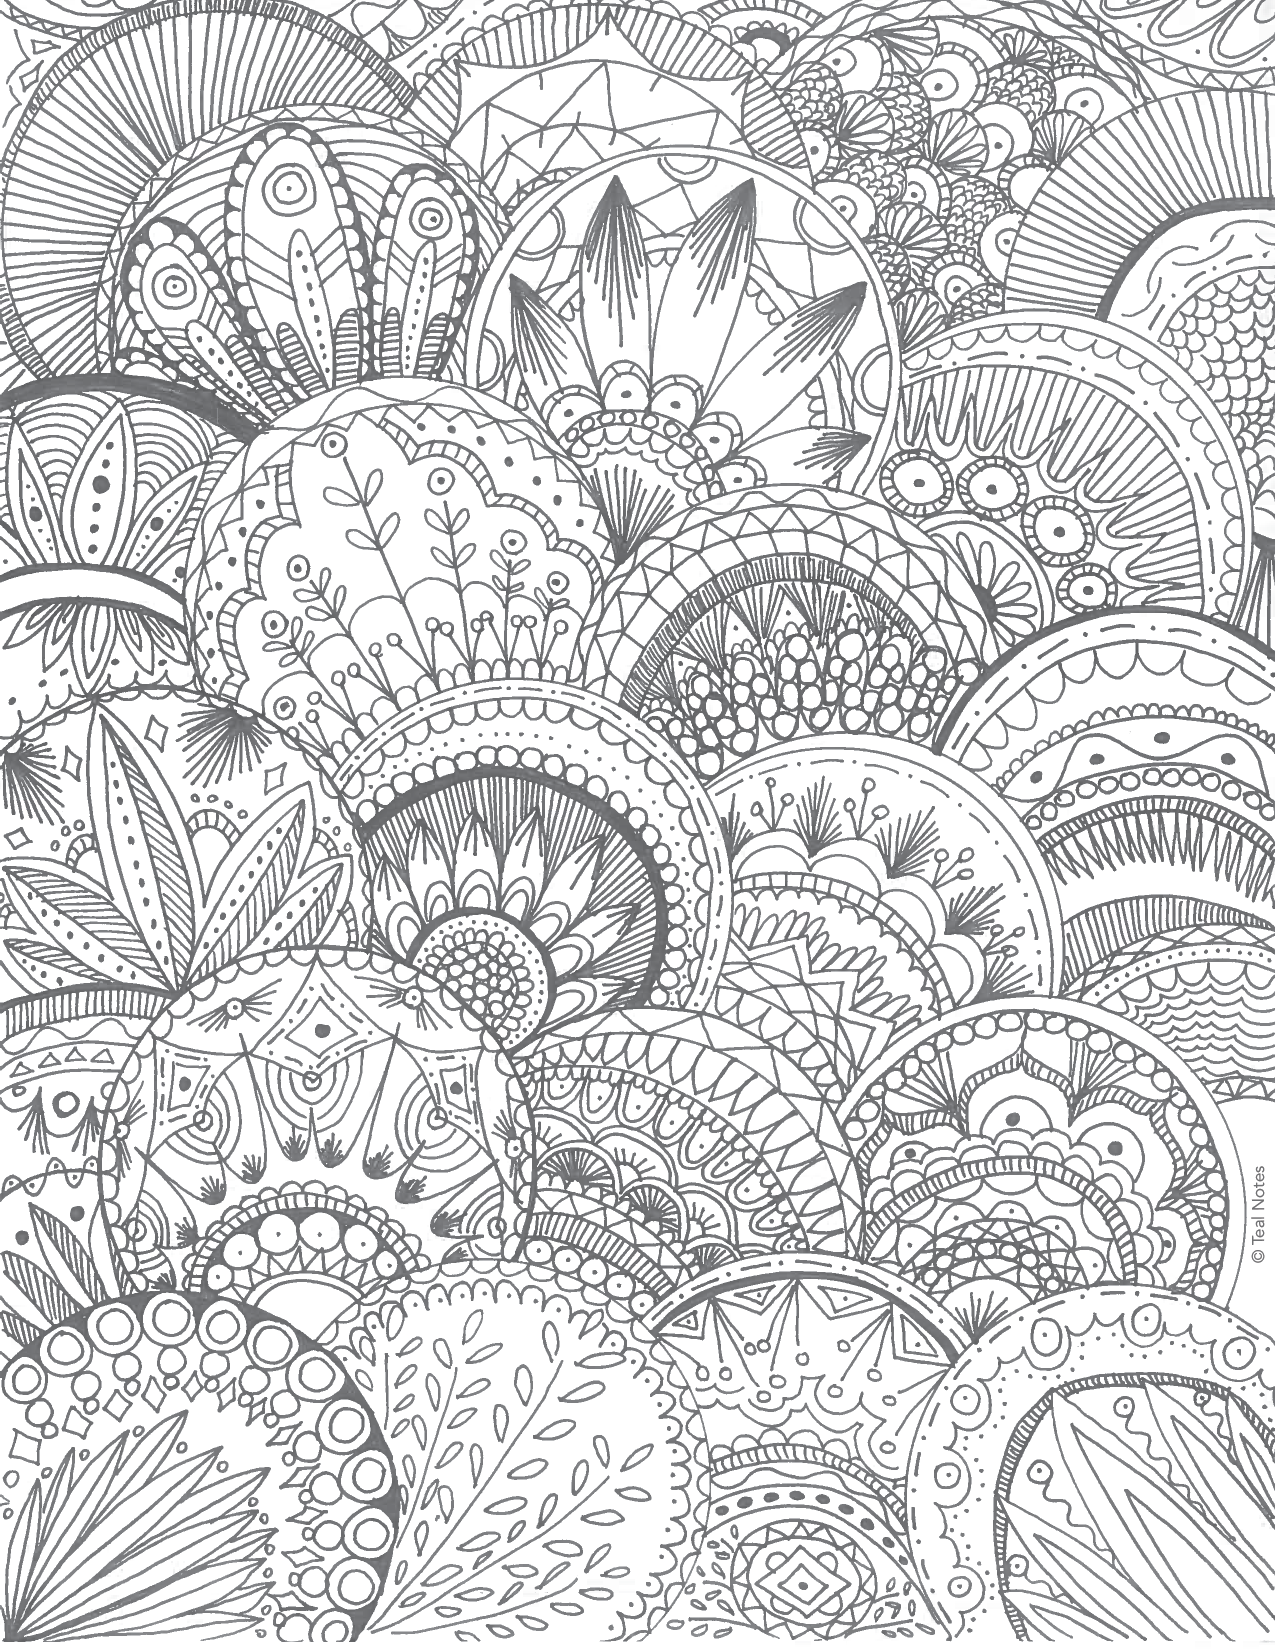 Free Printable Coloring Pages: 27 NEW Printable Coloring To Color